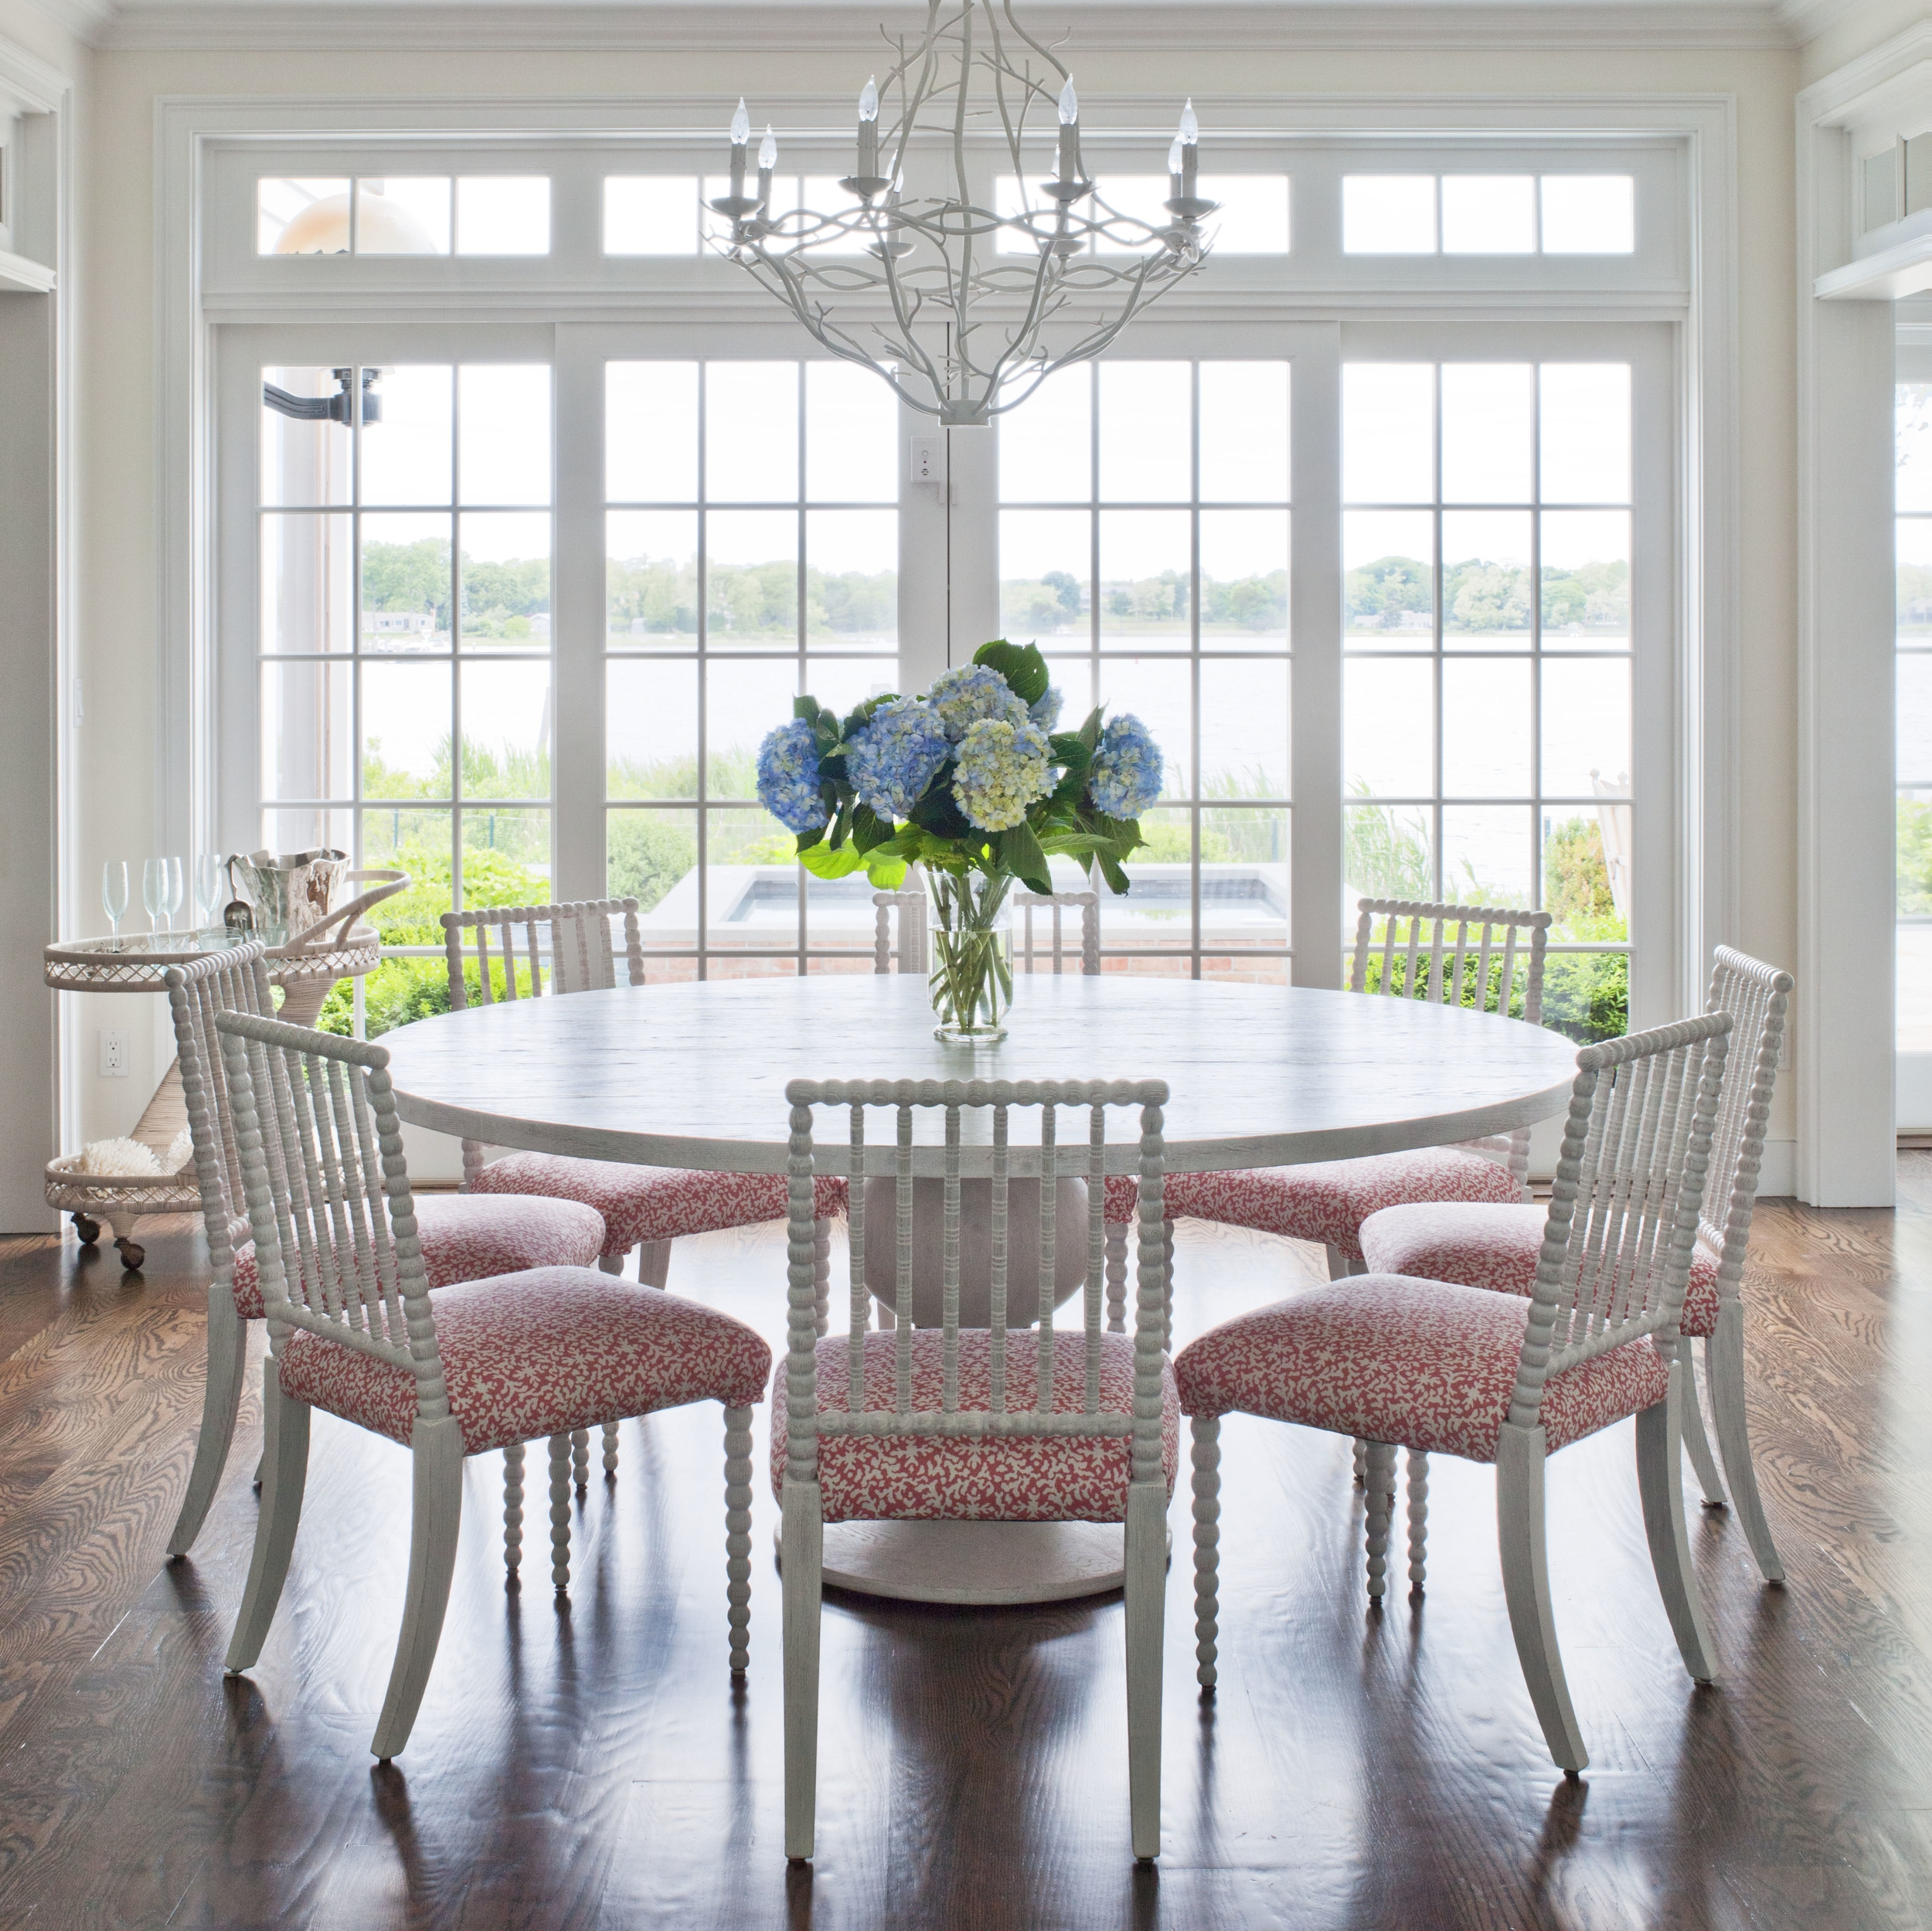 Hamptons Residential & Commercial Interior Design Services